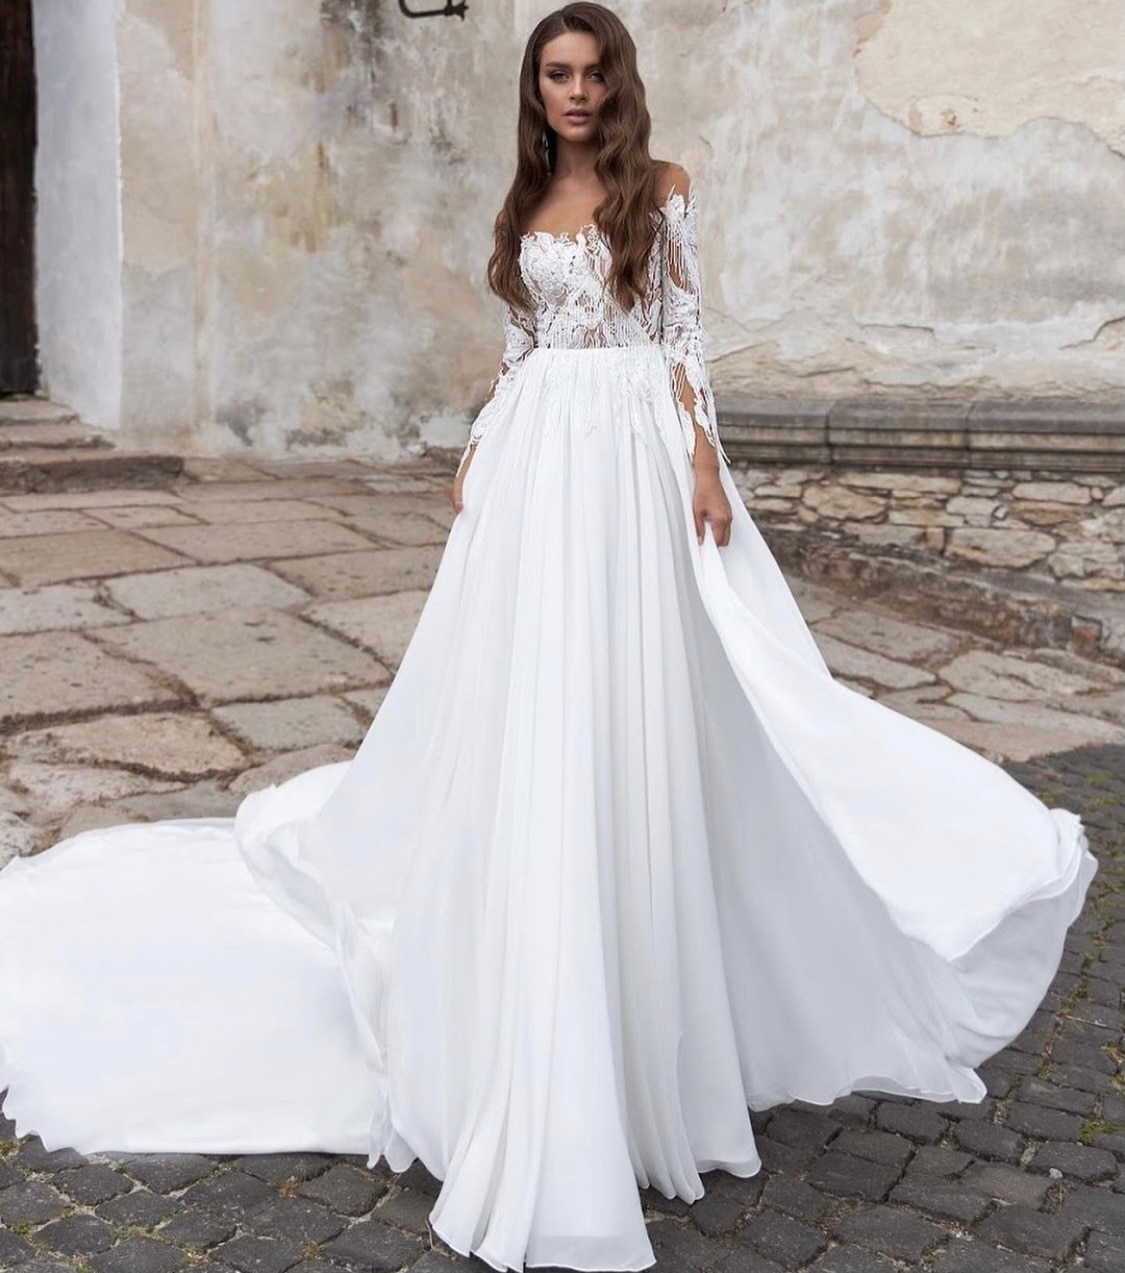 Get Wedding Dress A-Line Full Sleeve Sheer Neck Lace Appliques Sequined Tassel Backless Button Floor Length Sweep Train Bride Gown